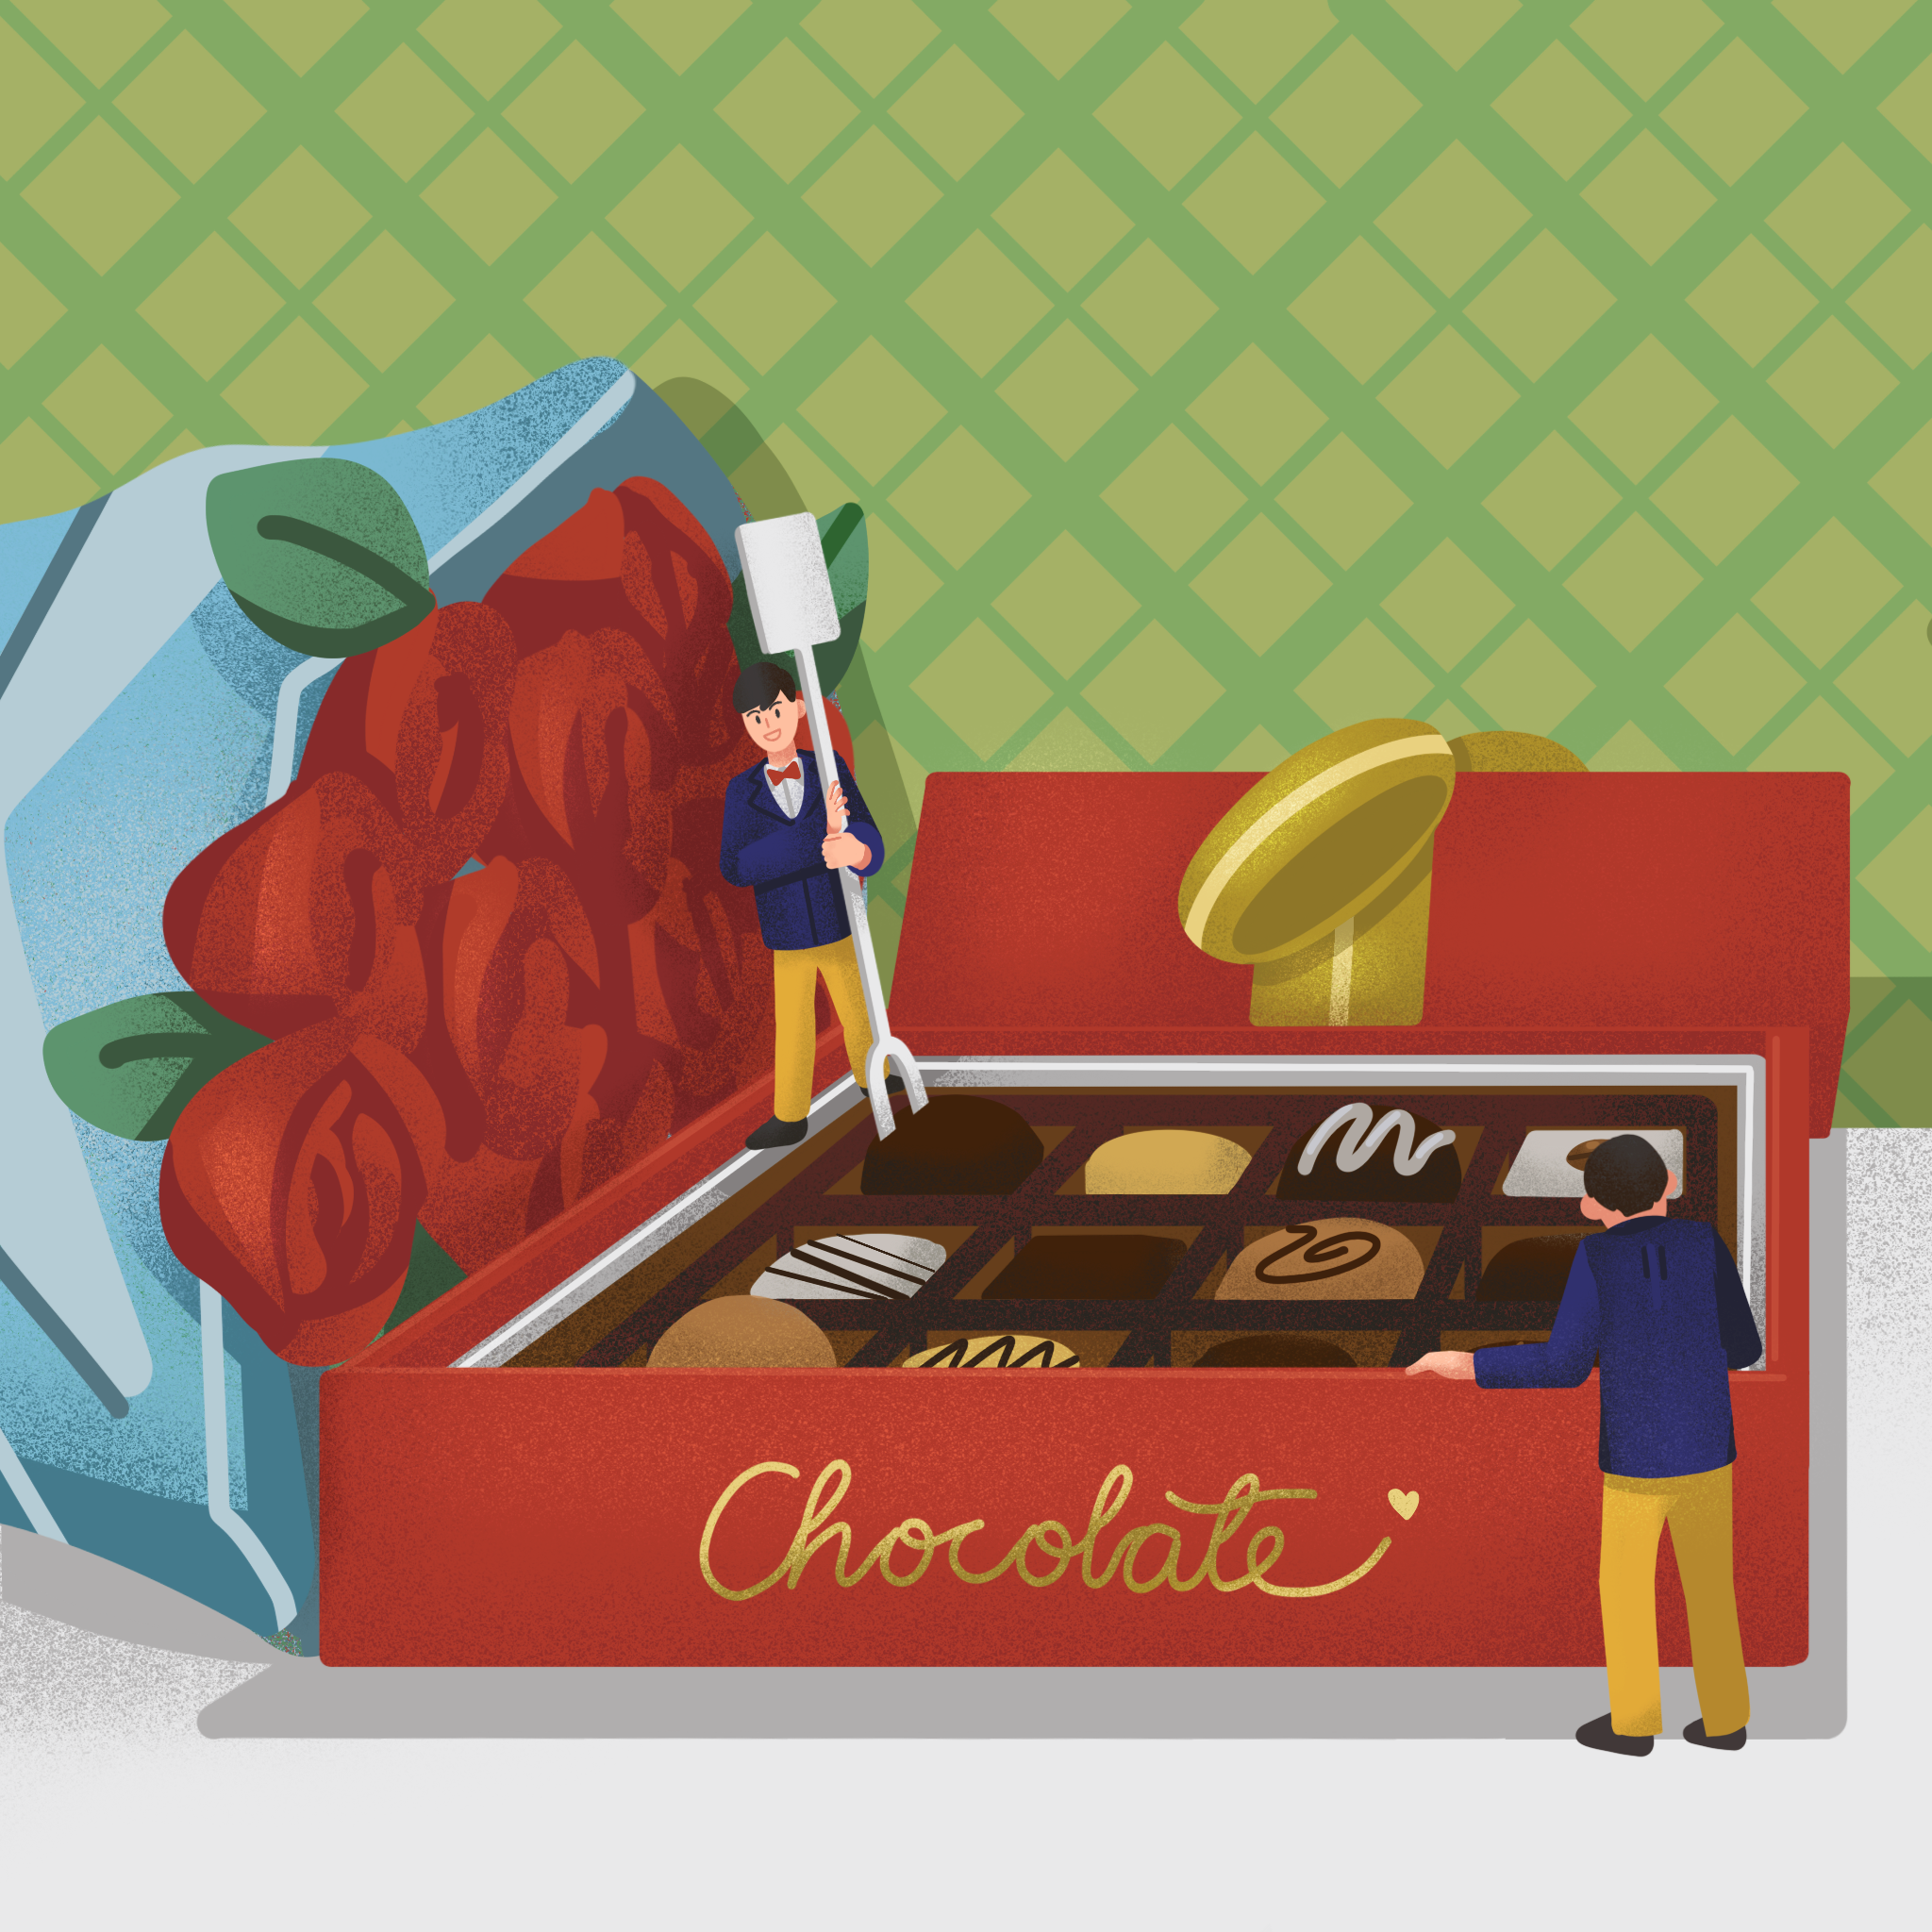 An illustration designed for chocolate advertisements.